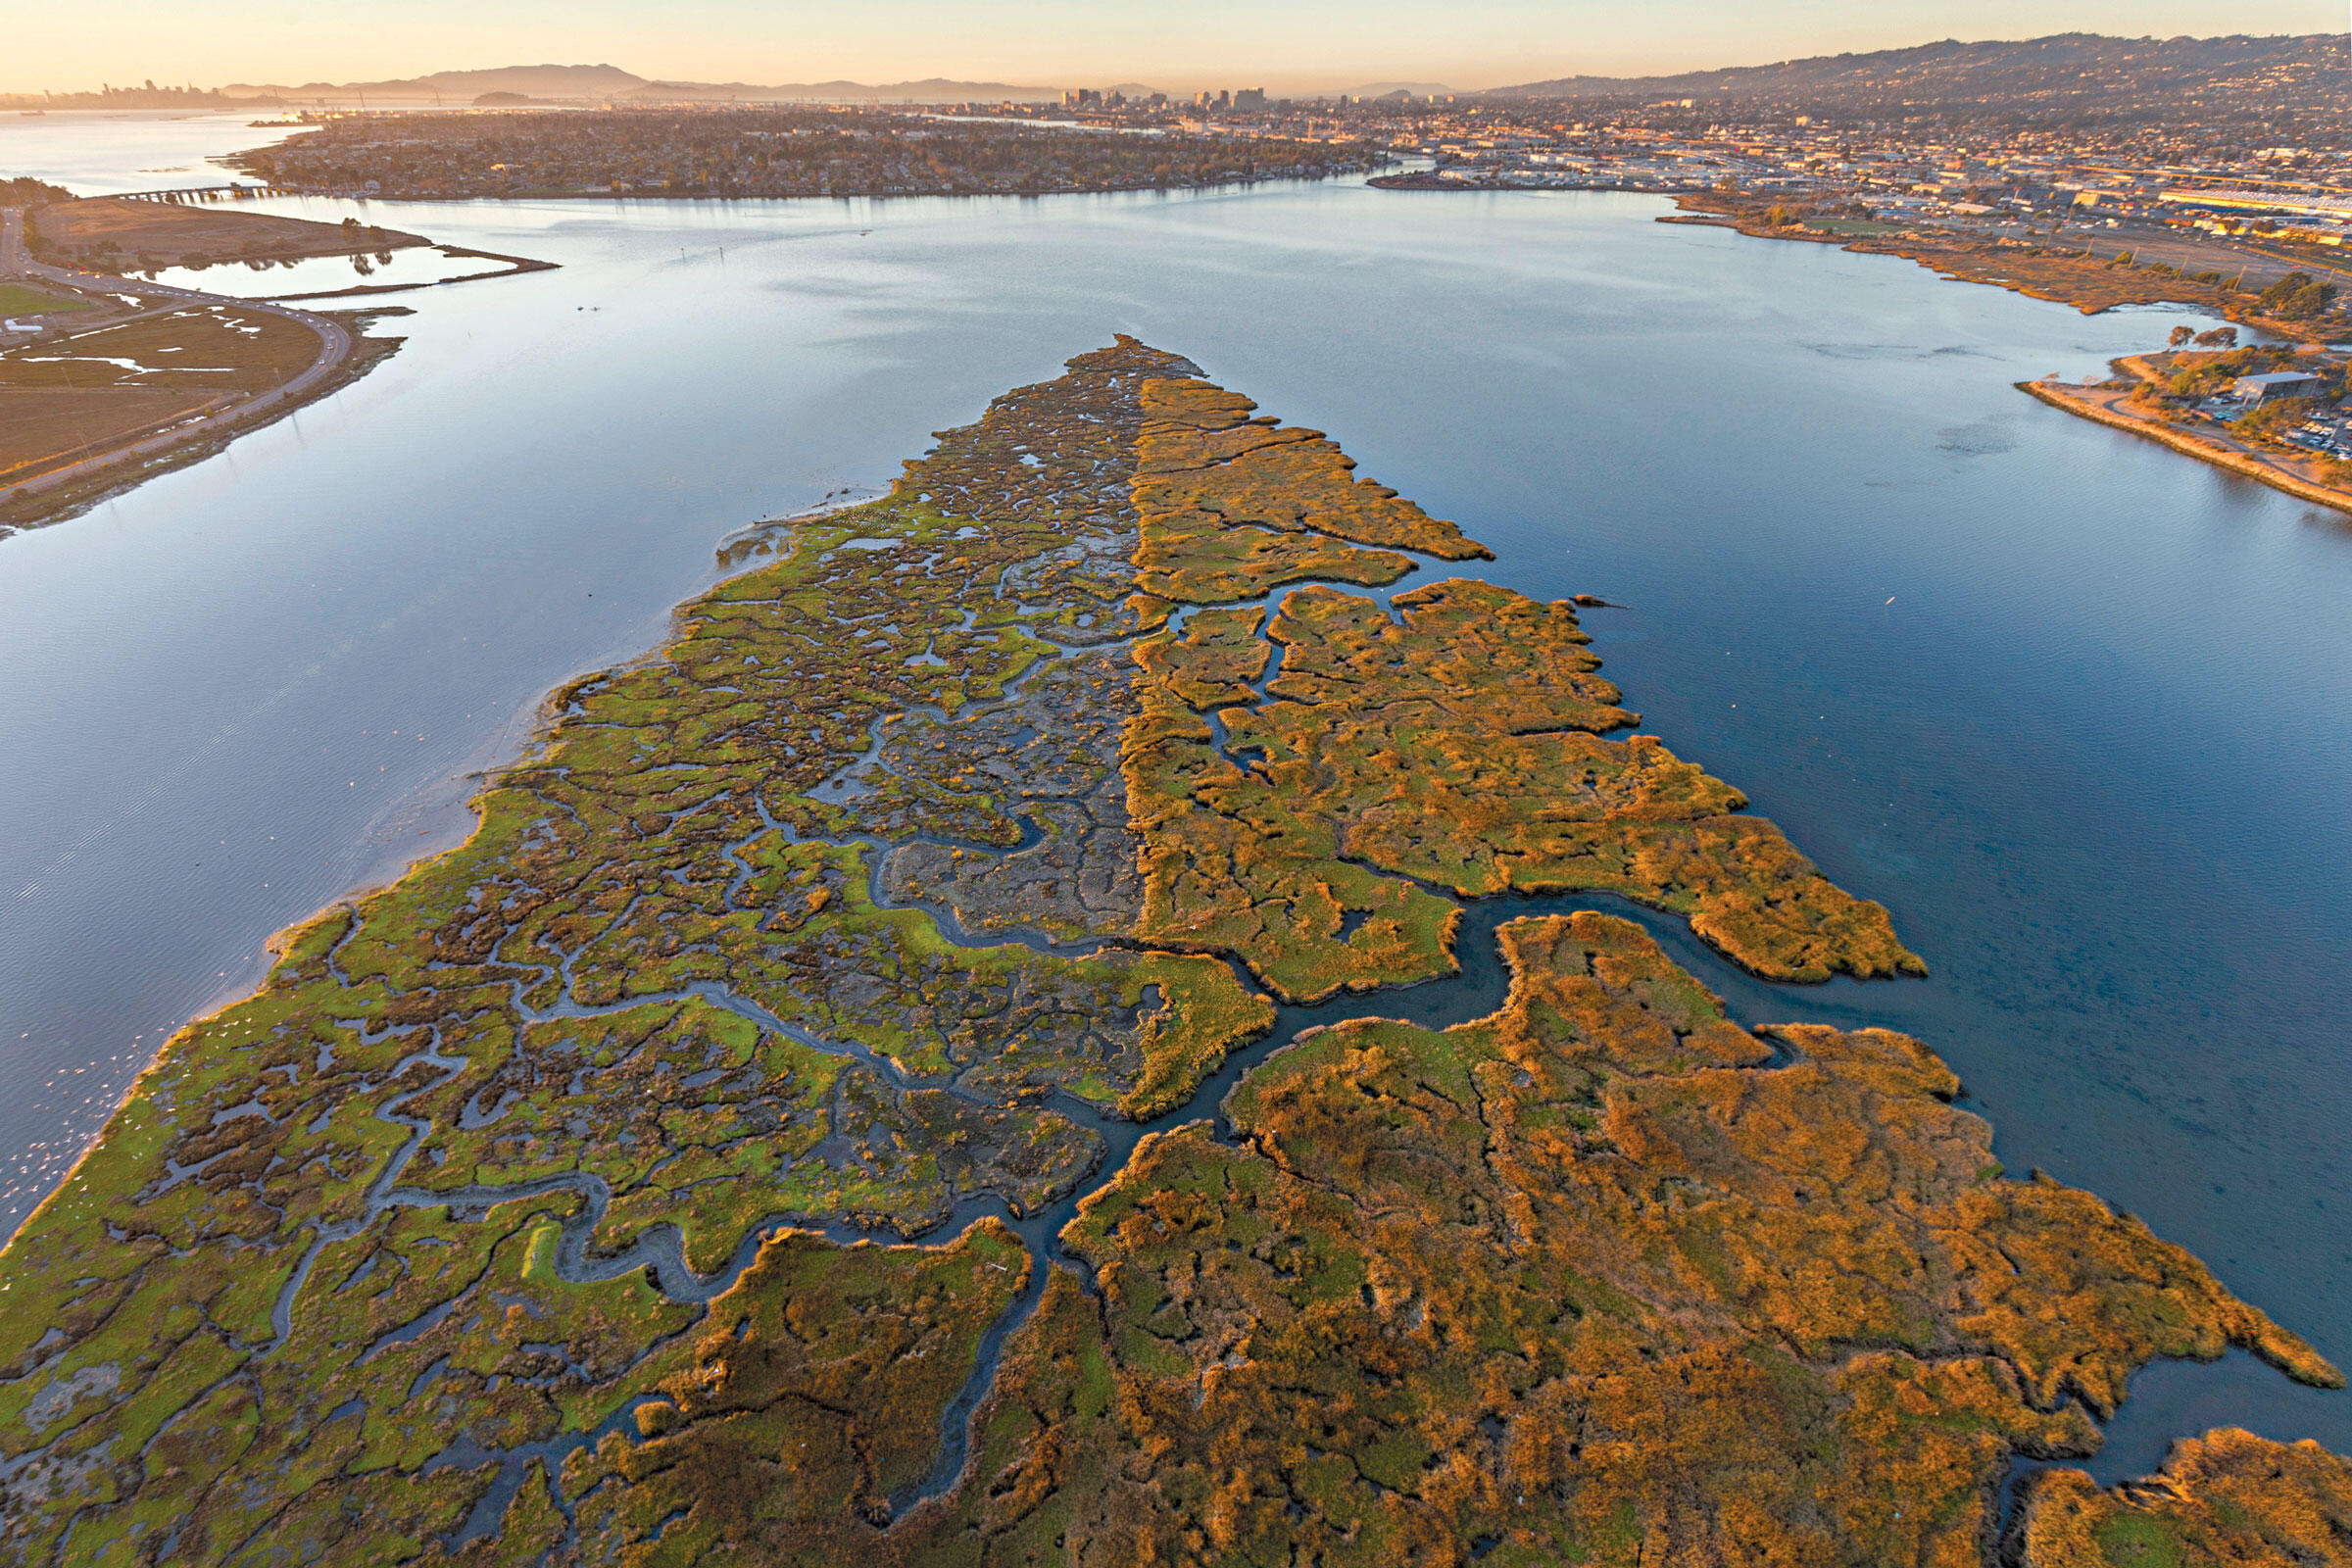 Oakland's Arrowhead Marsh, a mere two miles from the Coliseum stadium complex, is already undergoing restoration to fight sea-level rise. Peter Essick/Aurora